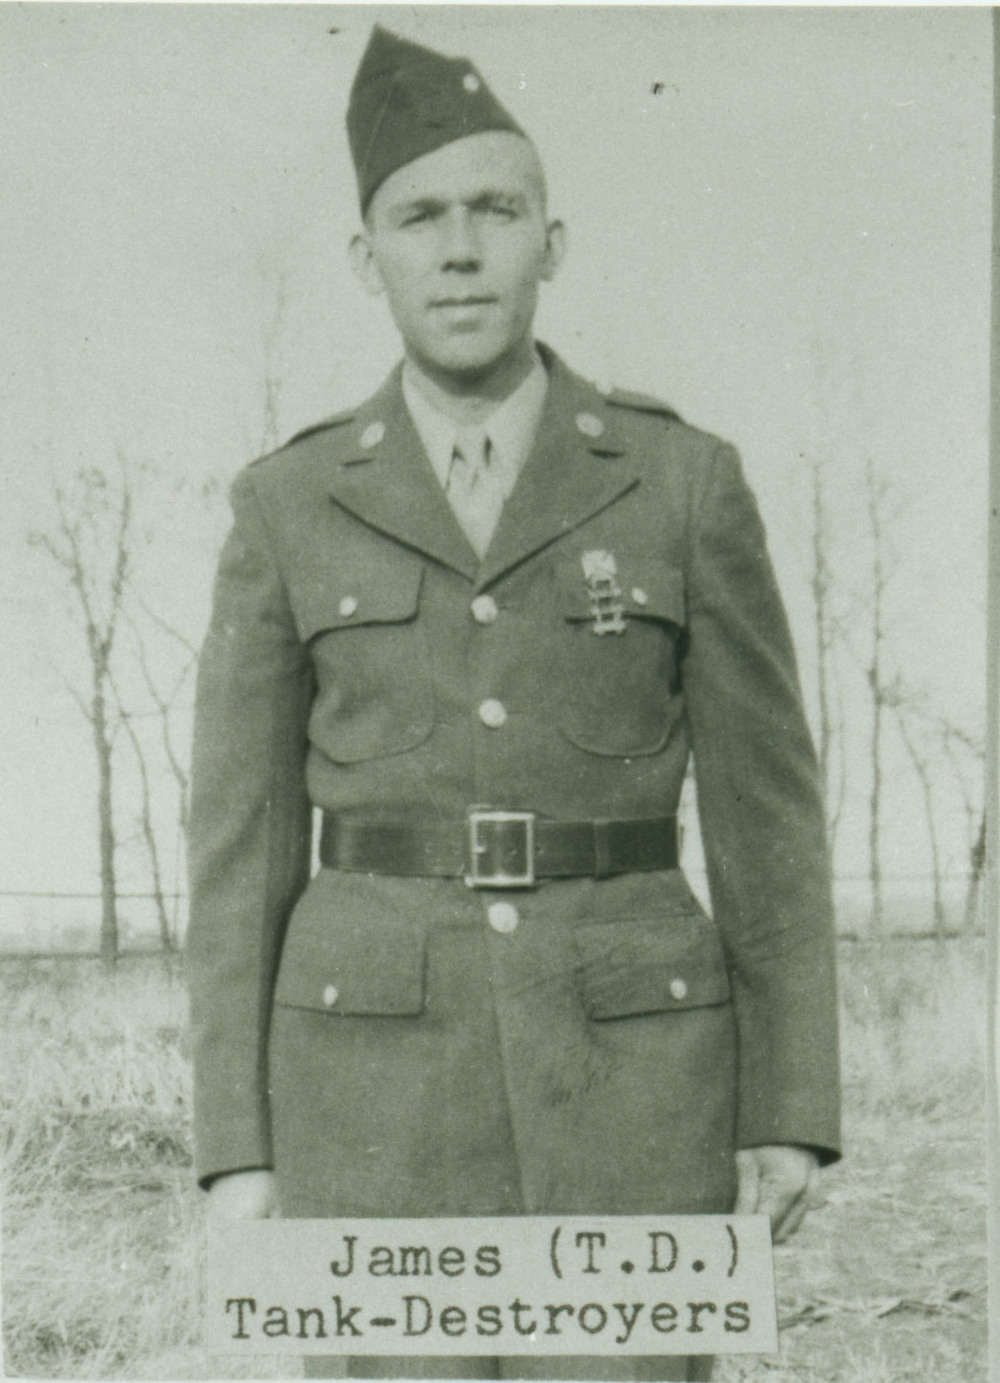 James Radlein and five of his brothers served during World War II in various branches of the military. James is featured in the History Center exhibit.